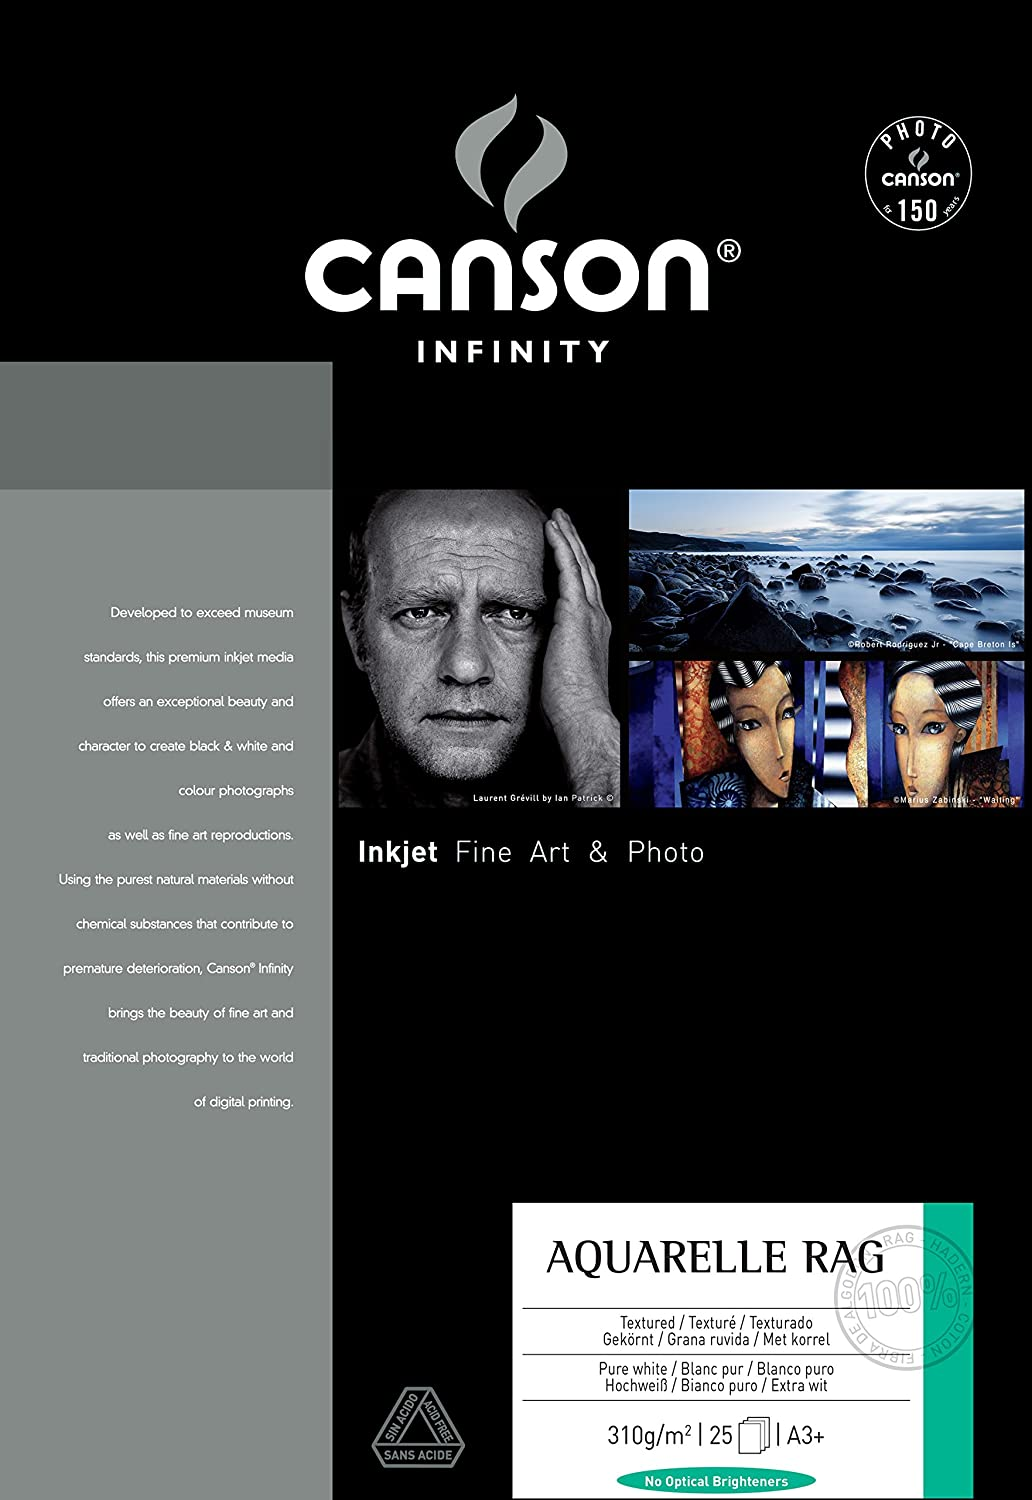 Legion Canson Infinity Digital Paper, Aquarelle Rag 310S, 13 X 19 inches, 25 Sheets A3 (F11-AQR310131925) CANSON TALENS 206121018